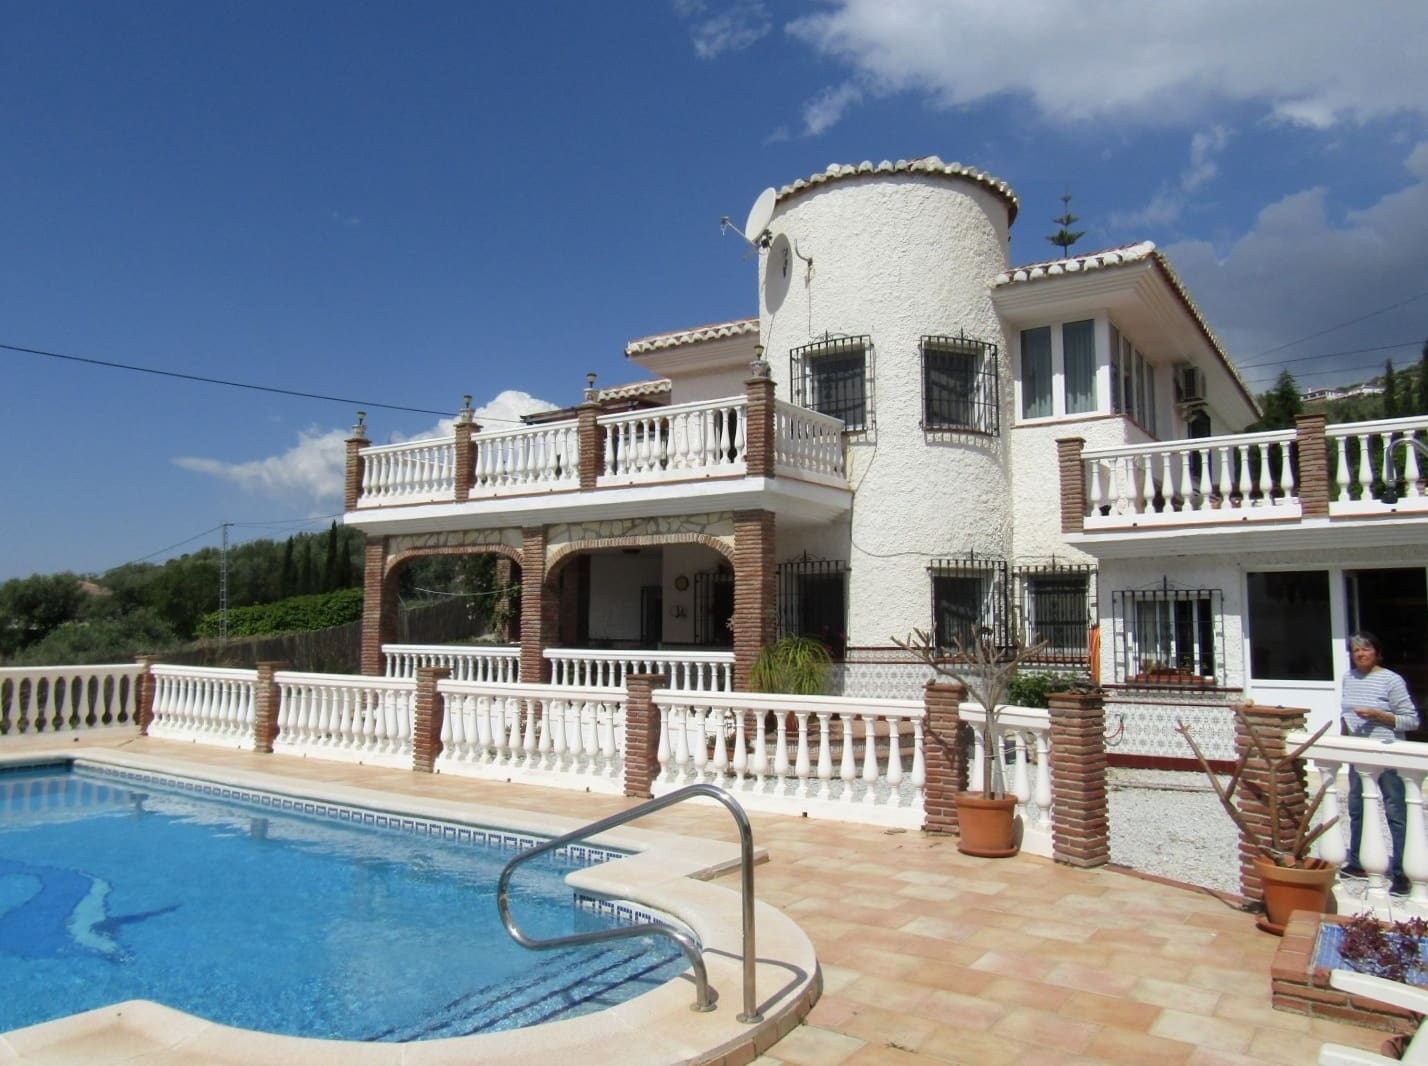 4 bedroom Finca/Country House for sale in Alcaucin with pool - € 350,000 (Ref: 3953438)